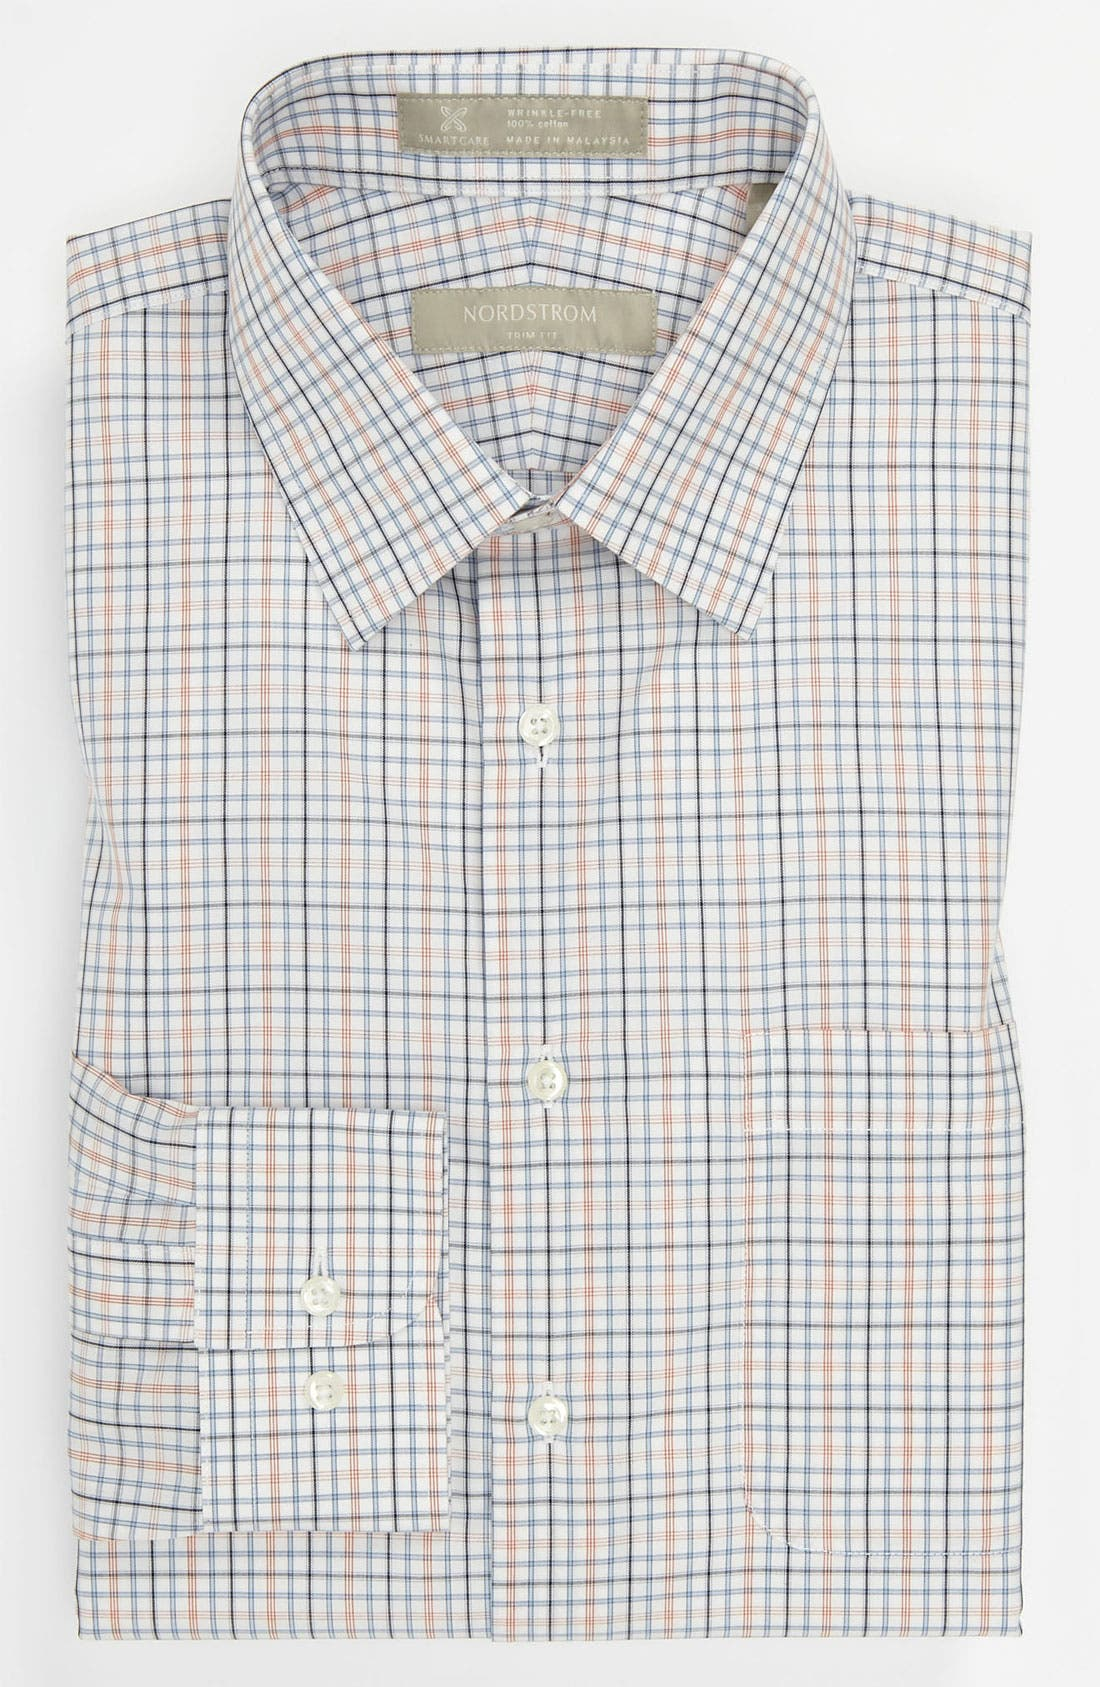 Alternate Image 1 Selected - Nordstrom Smartcare™ Trim Fit Dress Shirt (Online Only)